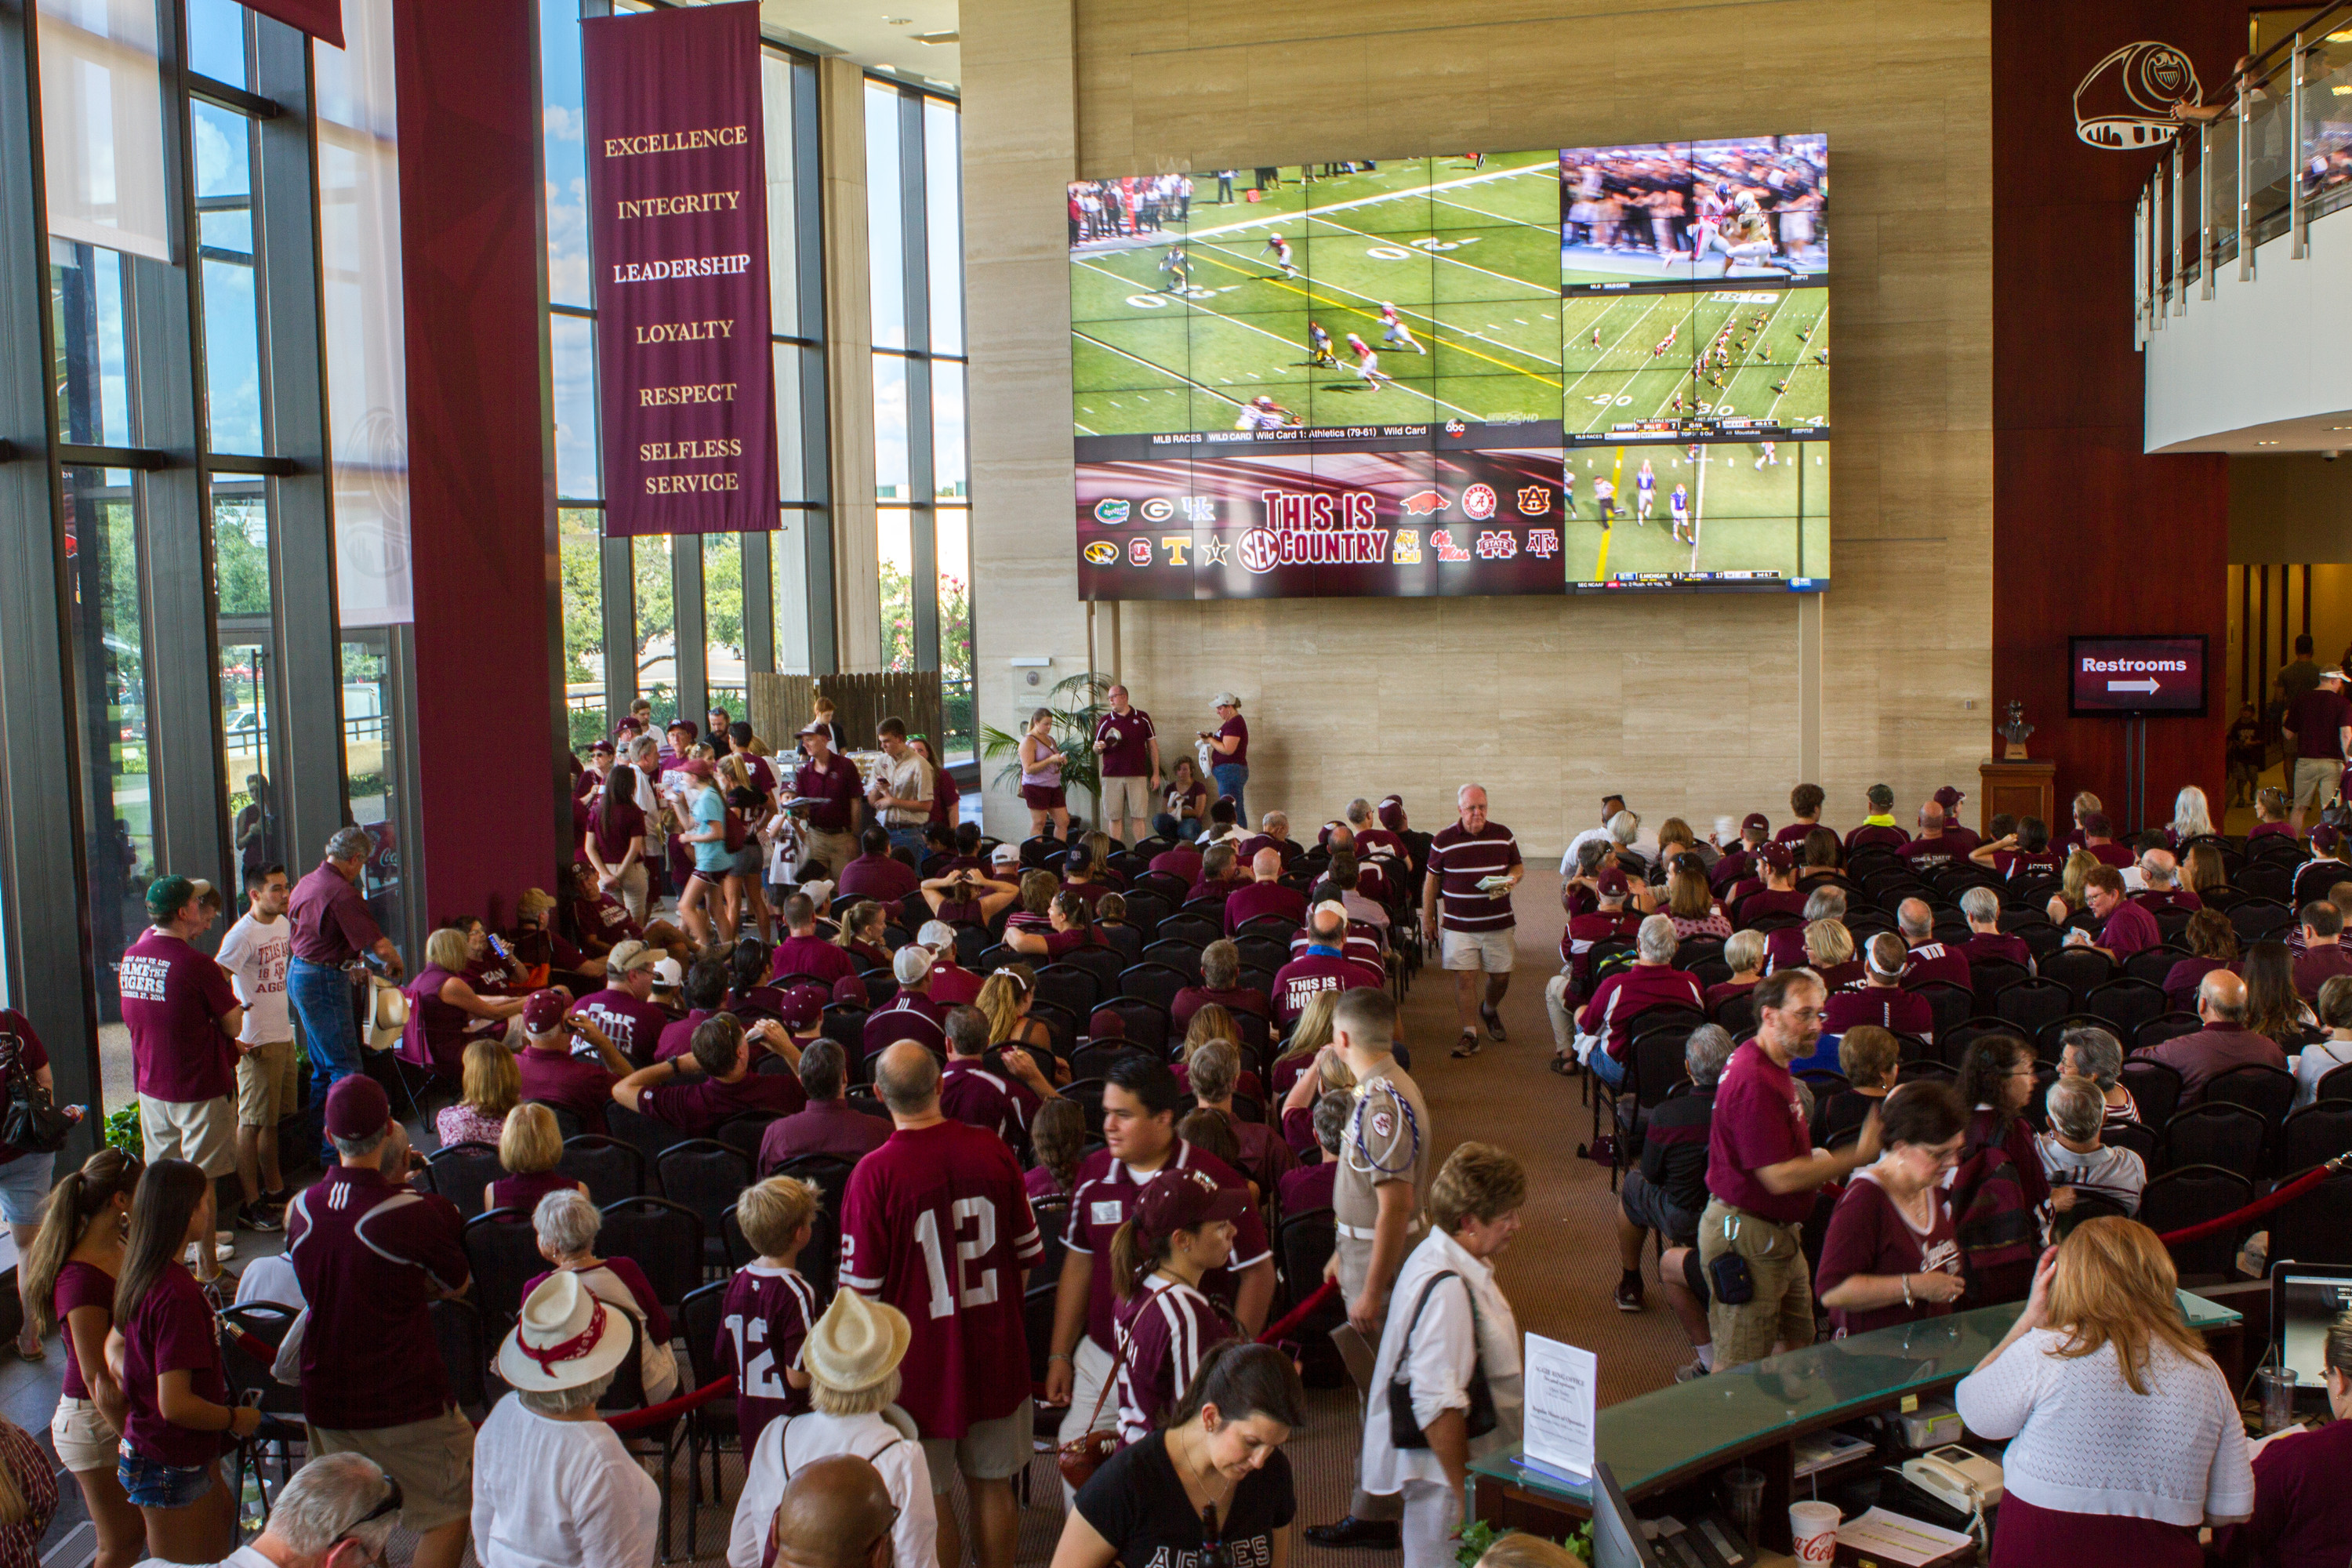 All-Aggie Tailgate For Mississippi State Is Free, Open To Public